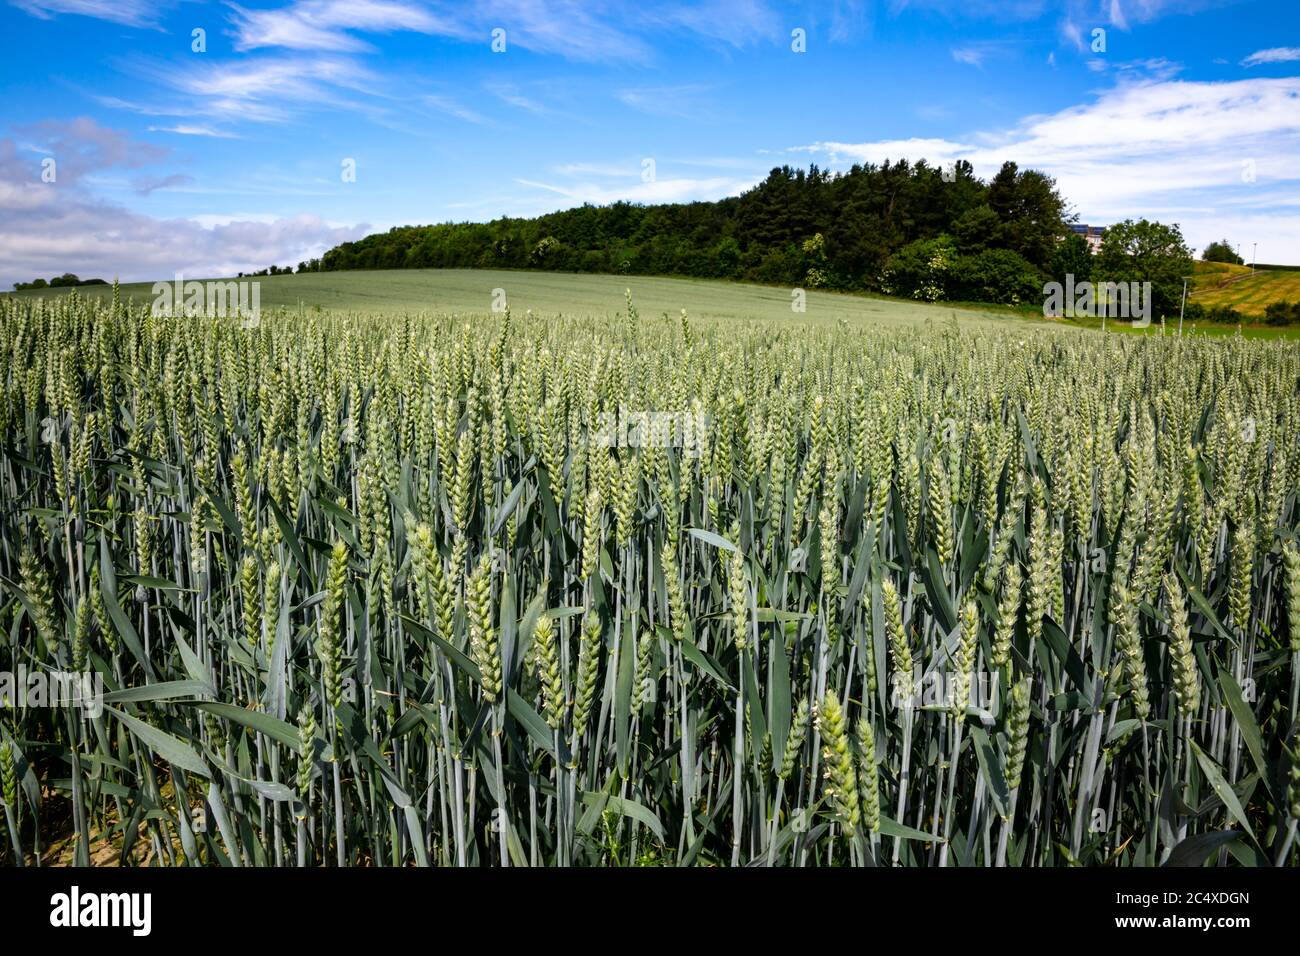 Ripening crop of wheat growing in a field, early Summer, Britain. Stock Photo